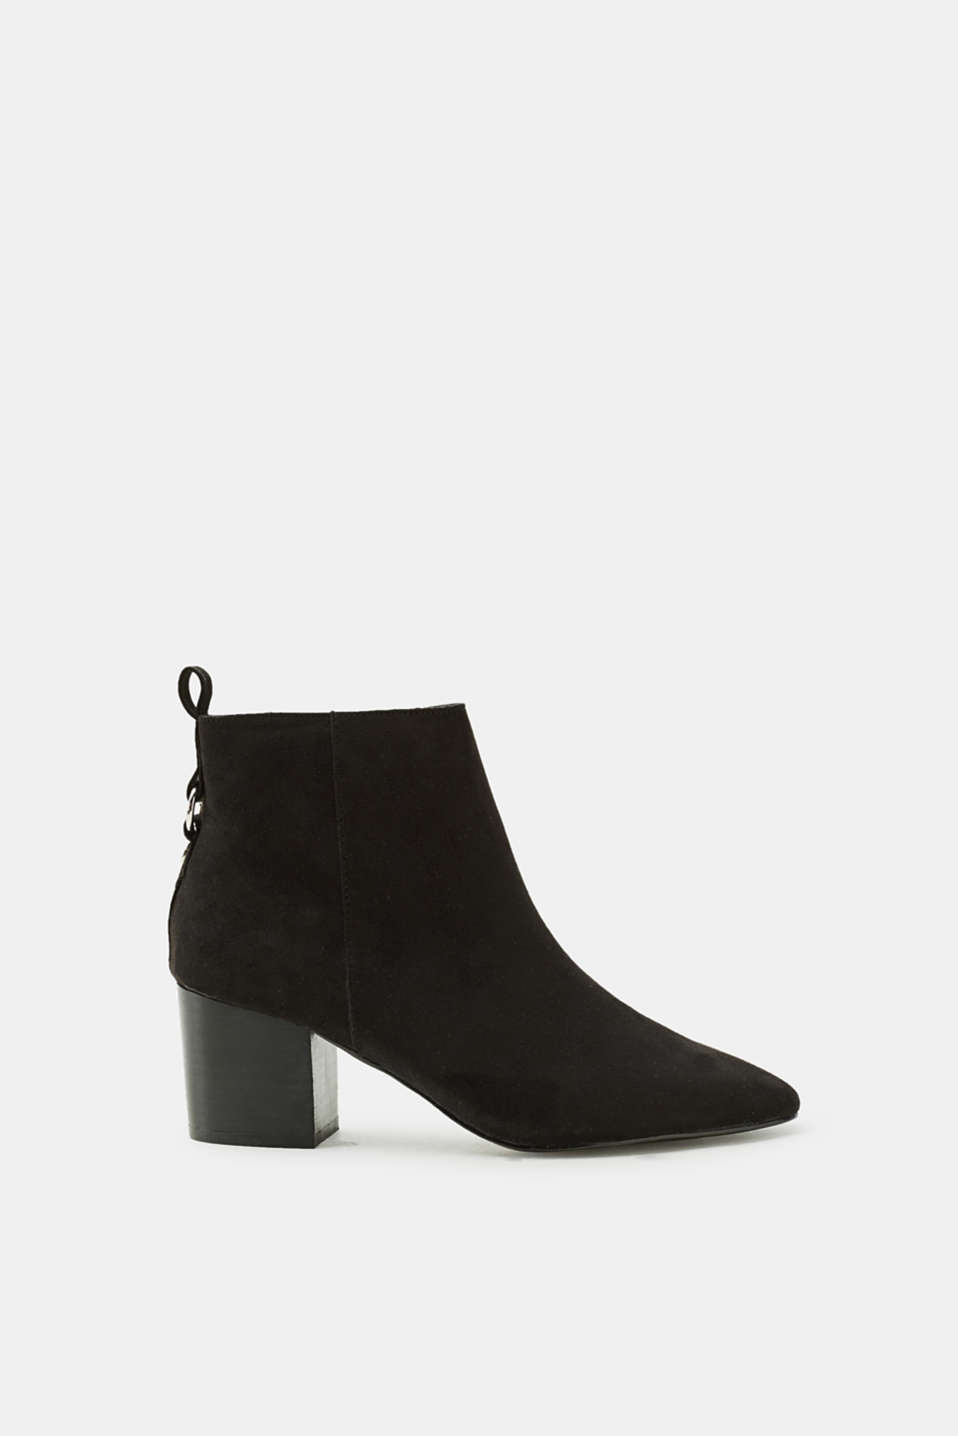 Esprit - Boots with a block heel, in faux suede